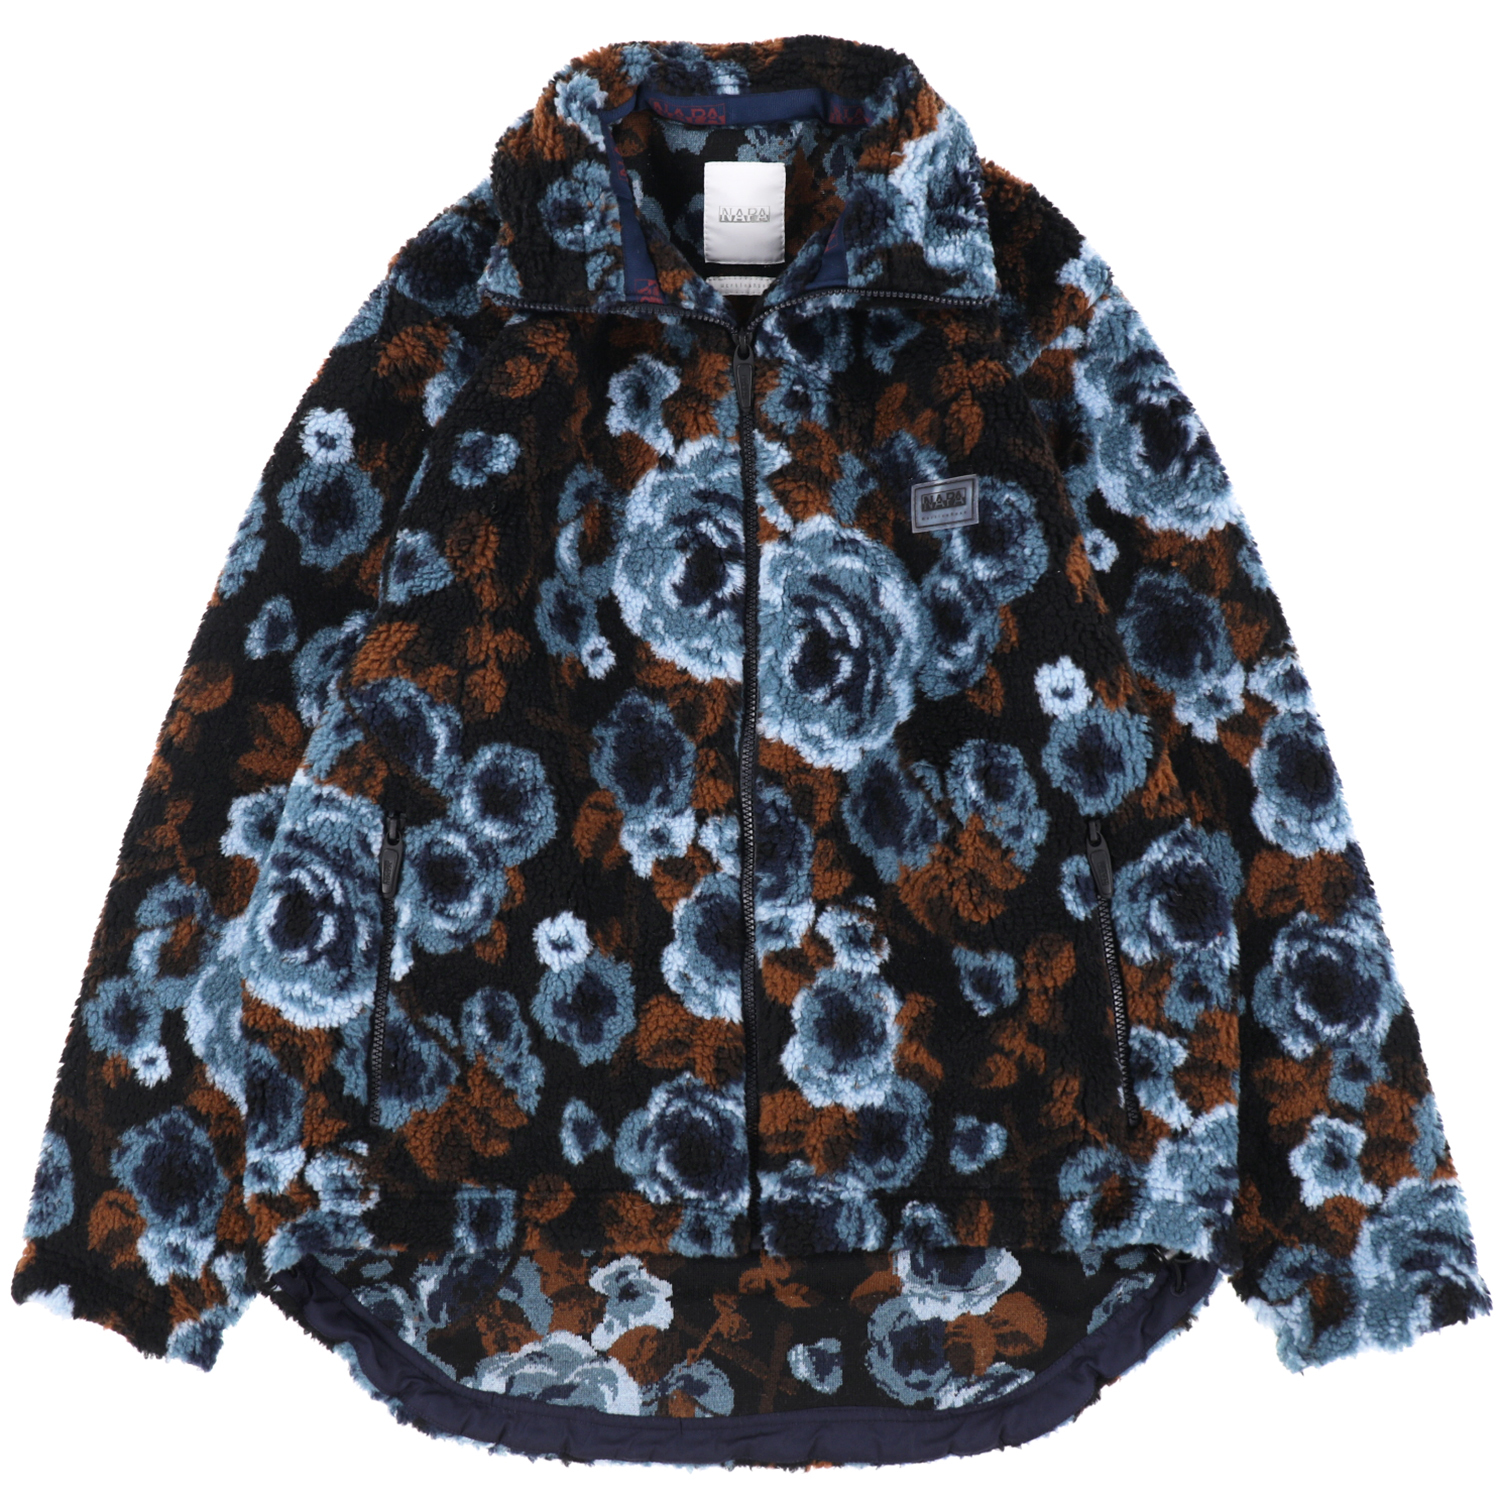 NAPA BY MARTINE ROSE  / T-EMIN JACQUARD JKT  PRINT FANTASY / BLUE